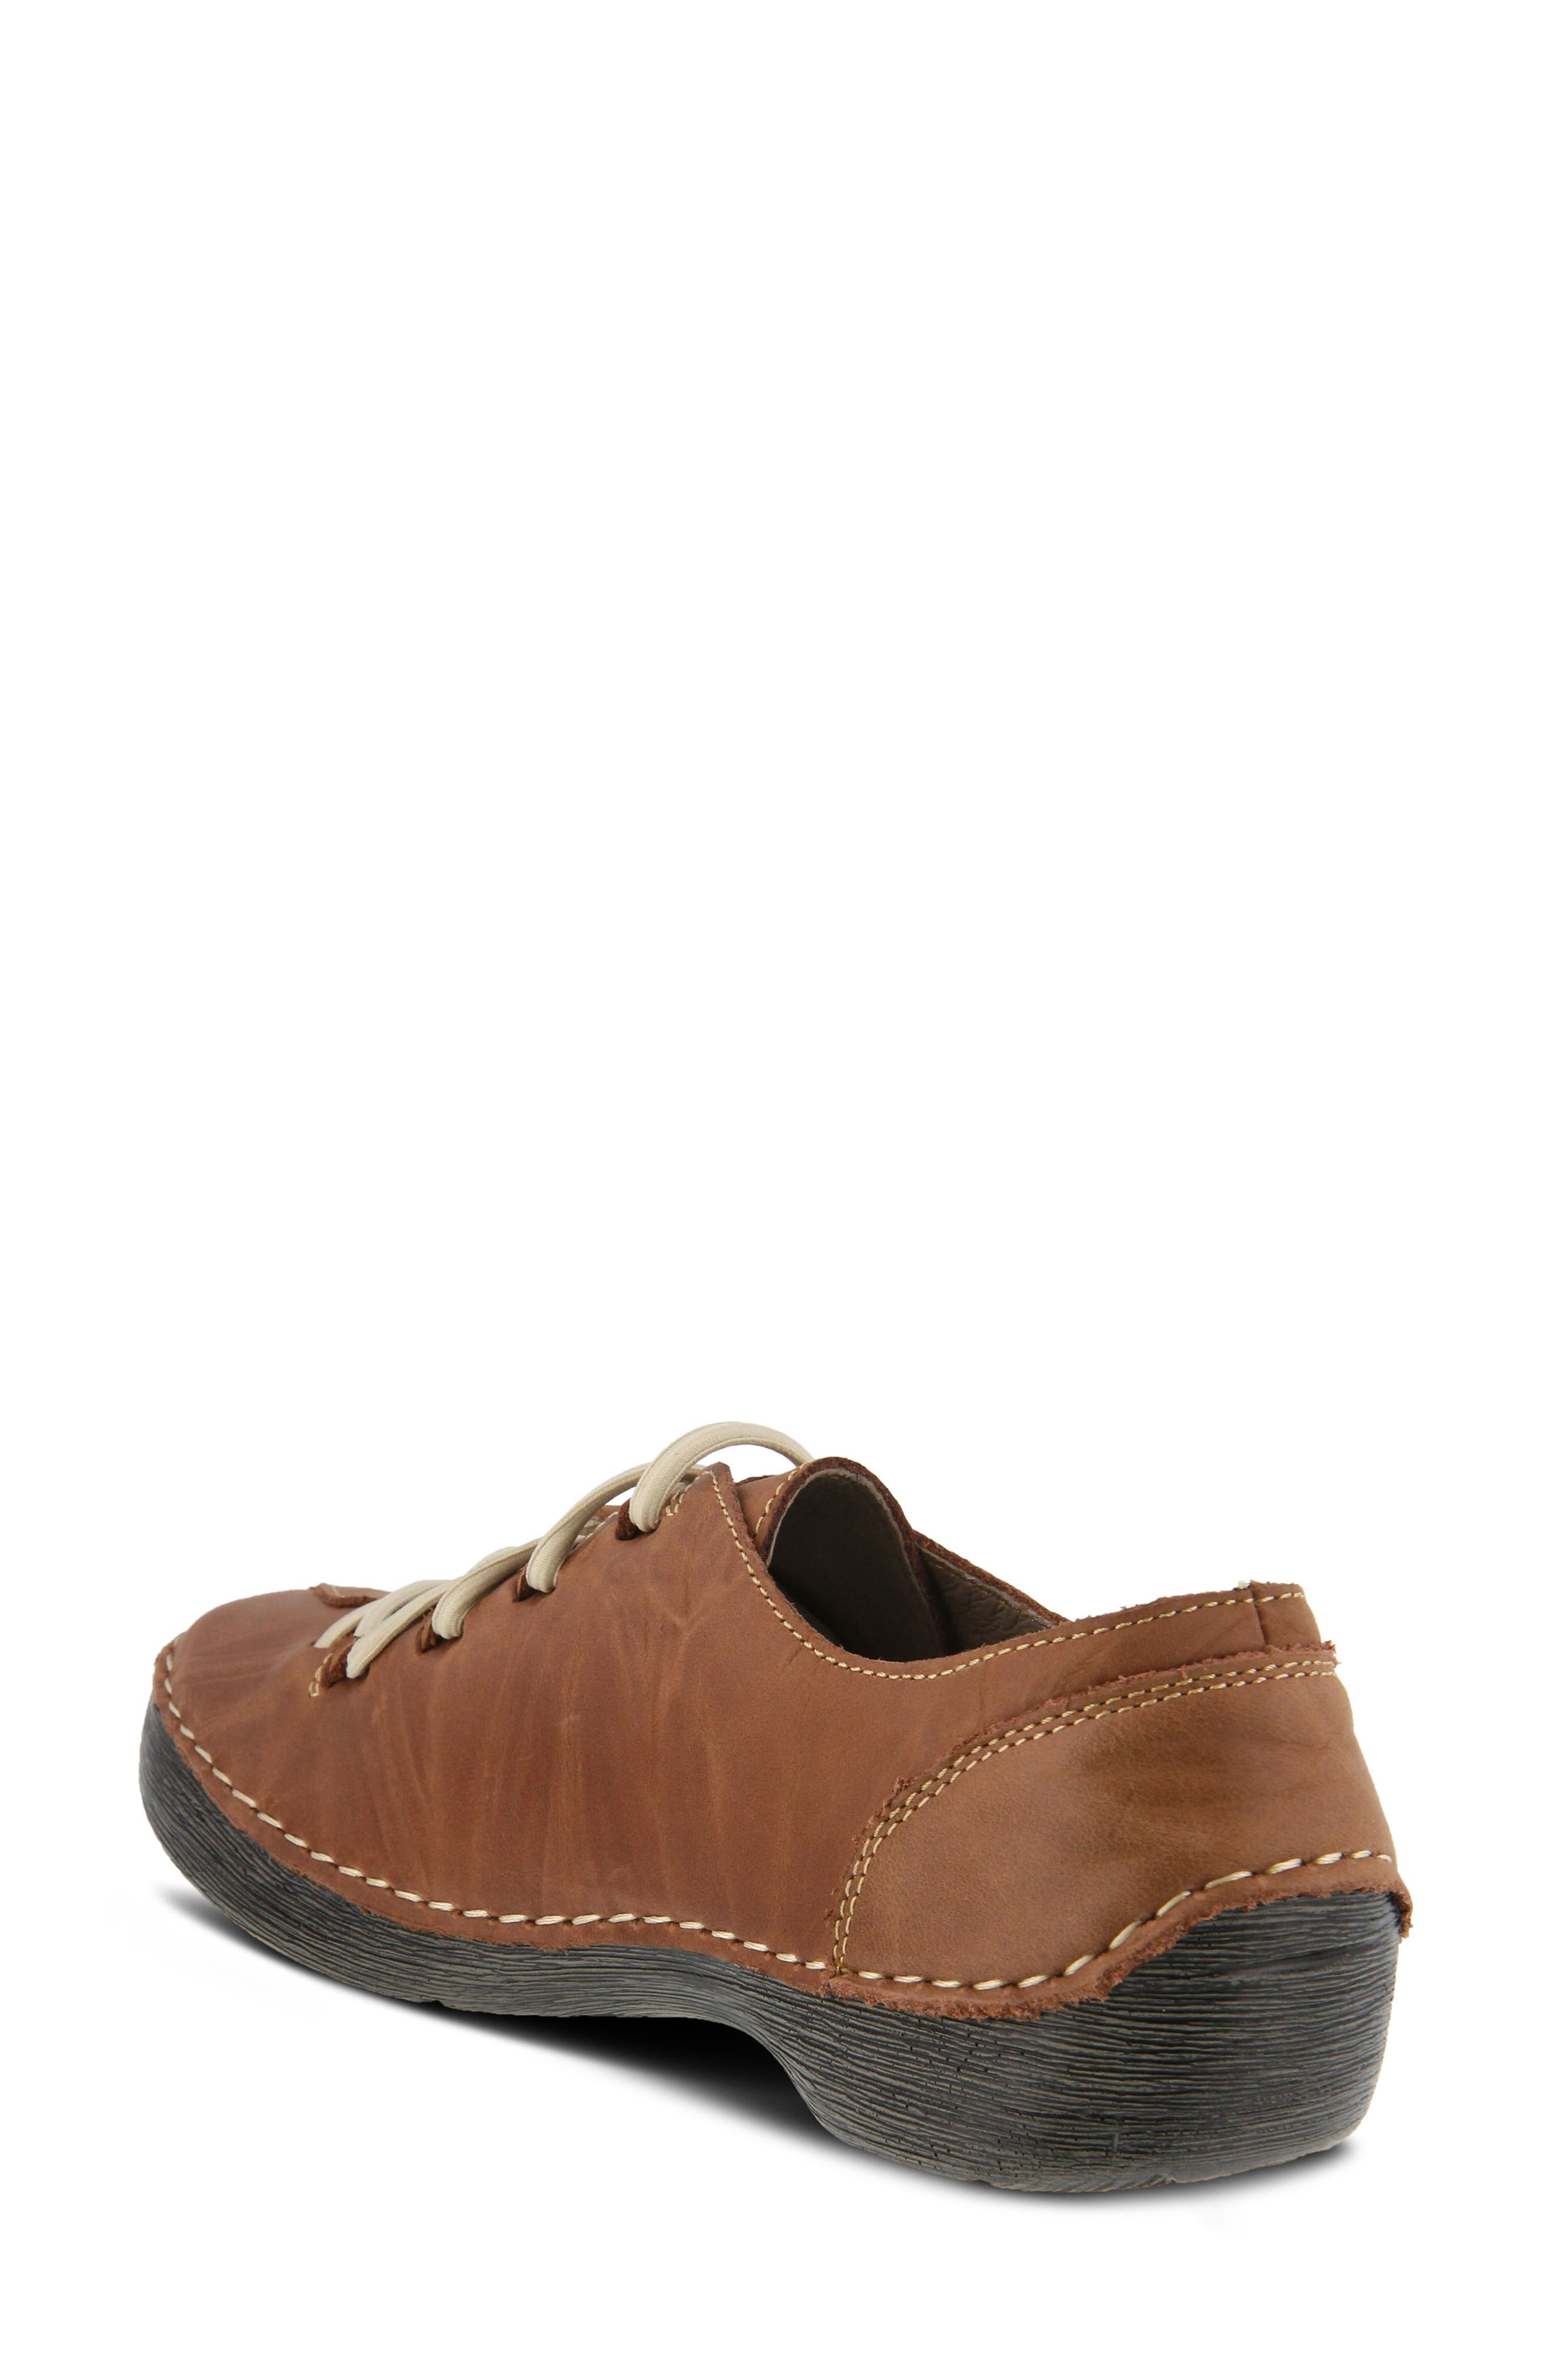 Carhop Sneaker,                             Alternate thumbnail 2, color,                             BROWN LEATHER